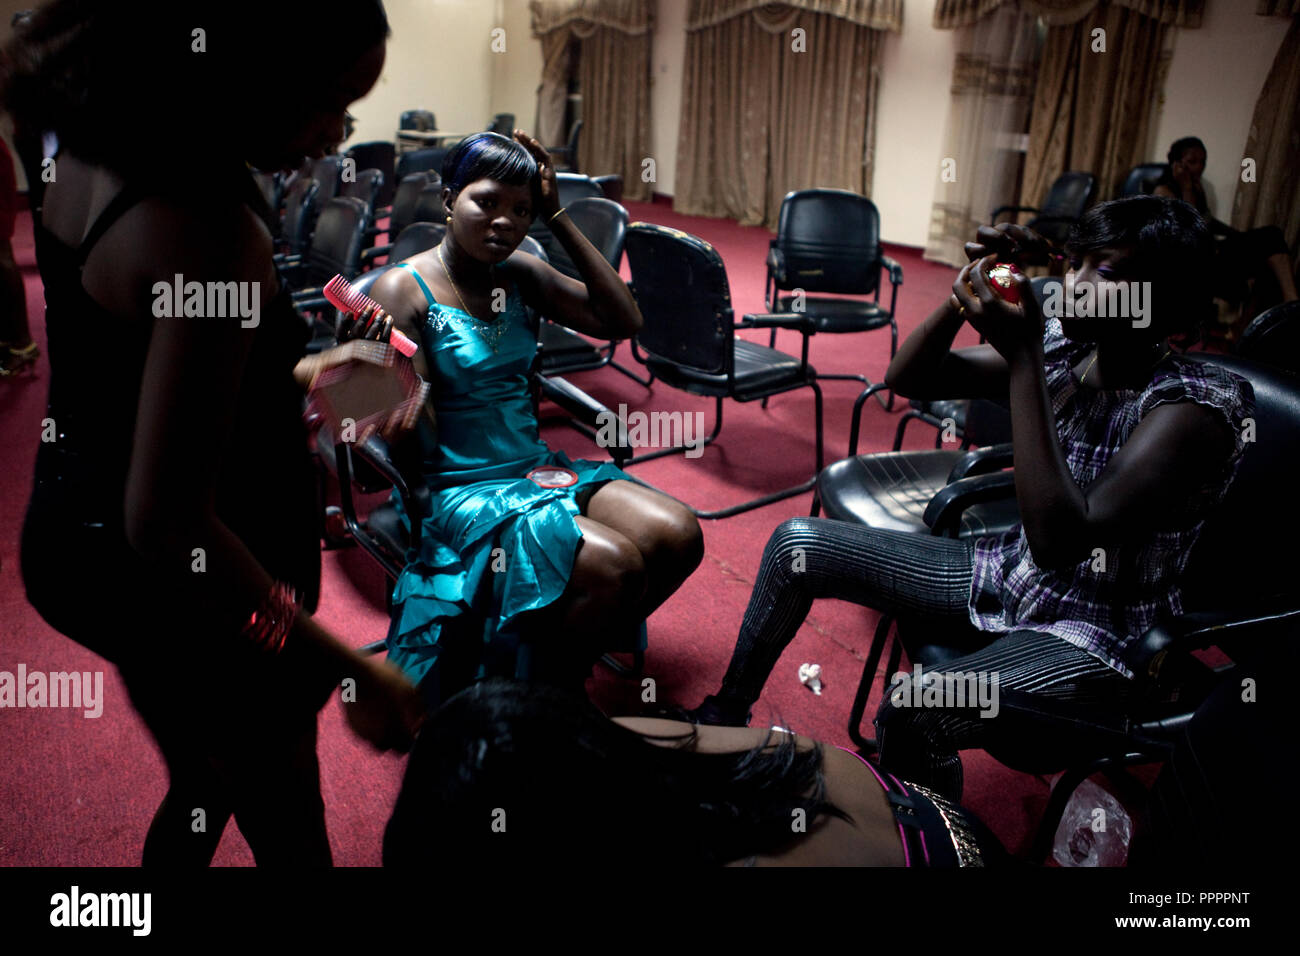 4 december 2010 - Juba, Southern Sudan - Contestants getting ready to participate in Miss Malaika South Sudan 2010 at Nyakuron Cultural Centre Juba. The contest featured 15 women from all 10 of South Sudan's states. The event was a way to show off their talents, traditions and culture. The competition was originally put together in 2005 by the southern Sudanese diaspora living in neighbouring Kenya. The word 'Malaika' means angel in Kiswahili, spoken widely in Kenya, the country where tens of thousands of southerners fled to, during ongoing conflicts. photo credit: Benedicte Desrus - Stock Image